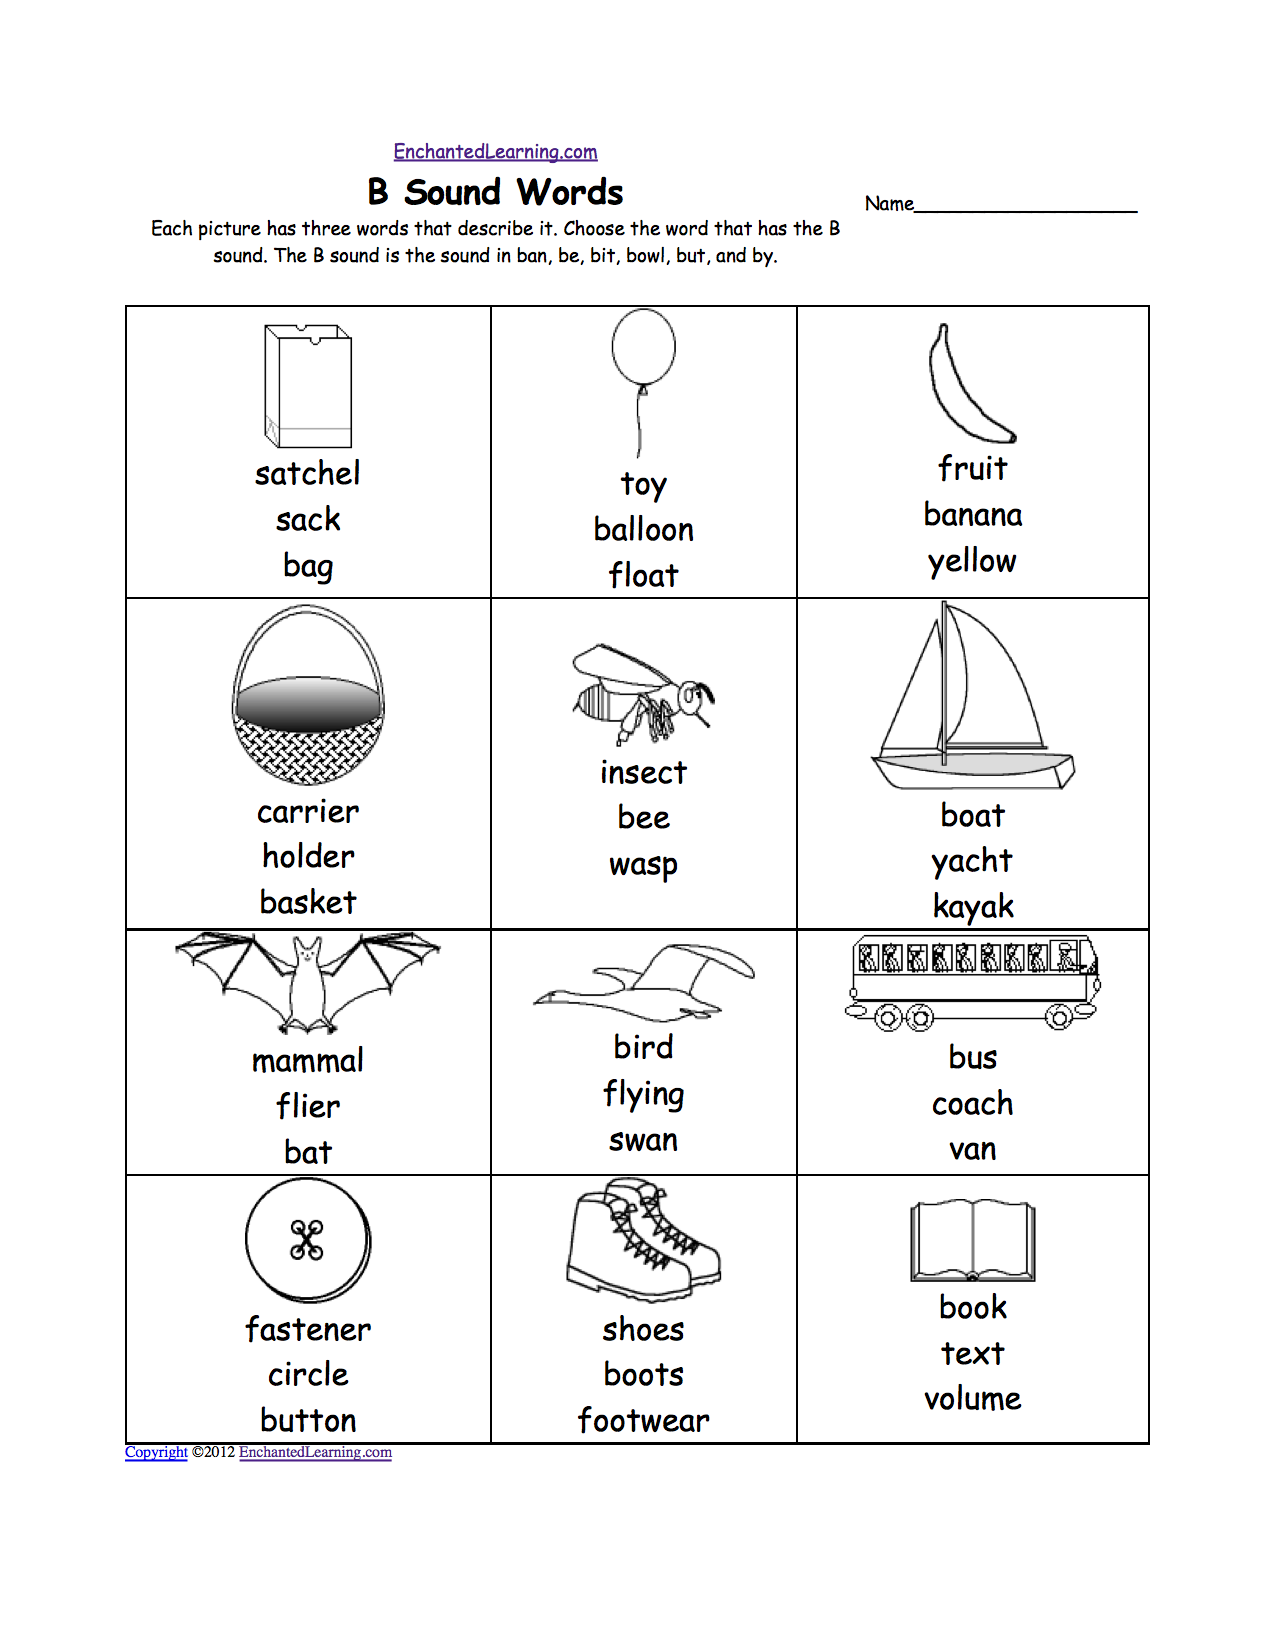 Aldiablosus  Unusual Phonics Worksheets Multiple Choice Worksheets To Print  With Likable Quotbquot Sound Phonics Worksheet Multiple Choice Each Picture Has Three Words That Describe It Choose The Word That Has A Quotbquot Sound The Quotbquot Sound Is The Sound  With Delectable Constitution Day Worksheet Also Hard And Soft G Worksheets In Addition Spanish Months Of The Year Worksheet And Complex Sentence Worksheet Th Grade As Well As Proper Nouns Worksheet St Grade Additionally Solving Equations Involving Fractions Worksheet From Enchantedlearningcom With Aldiablosus  Likable Phonics Worksheets Multiple Choice Worksheets To Print  With Delectable Quotbquot Sound Phonics Worksheet Multiple Choice Each Picture Has Three Words That Describe It Choose The Word That Has A Quotbquot Sound The Quotbquot Sound Is The Sound  And Unusual Constitution Day Worksheet Also Hard And Soft G Worksheets In Addition Spanish Months Of The Year Worksheet From Enchantedlearningcom